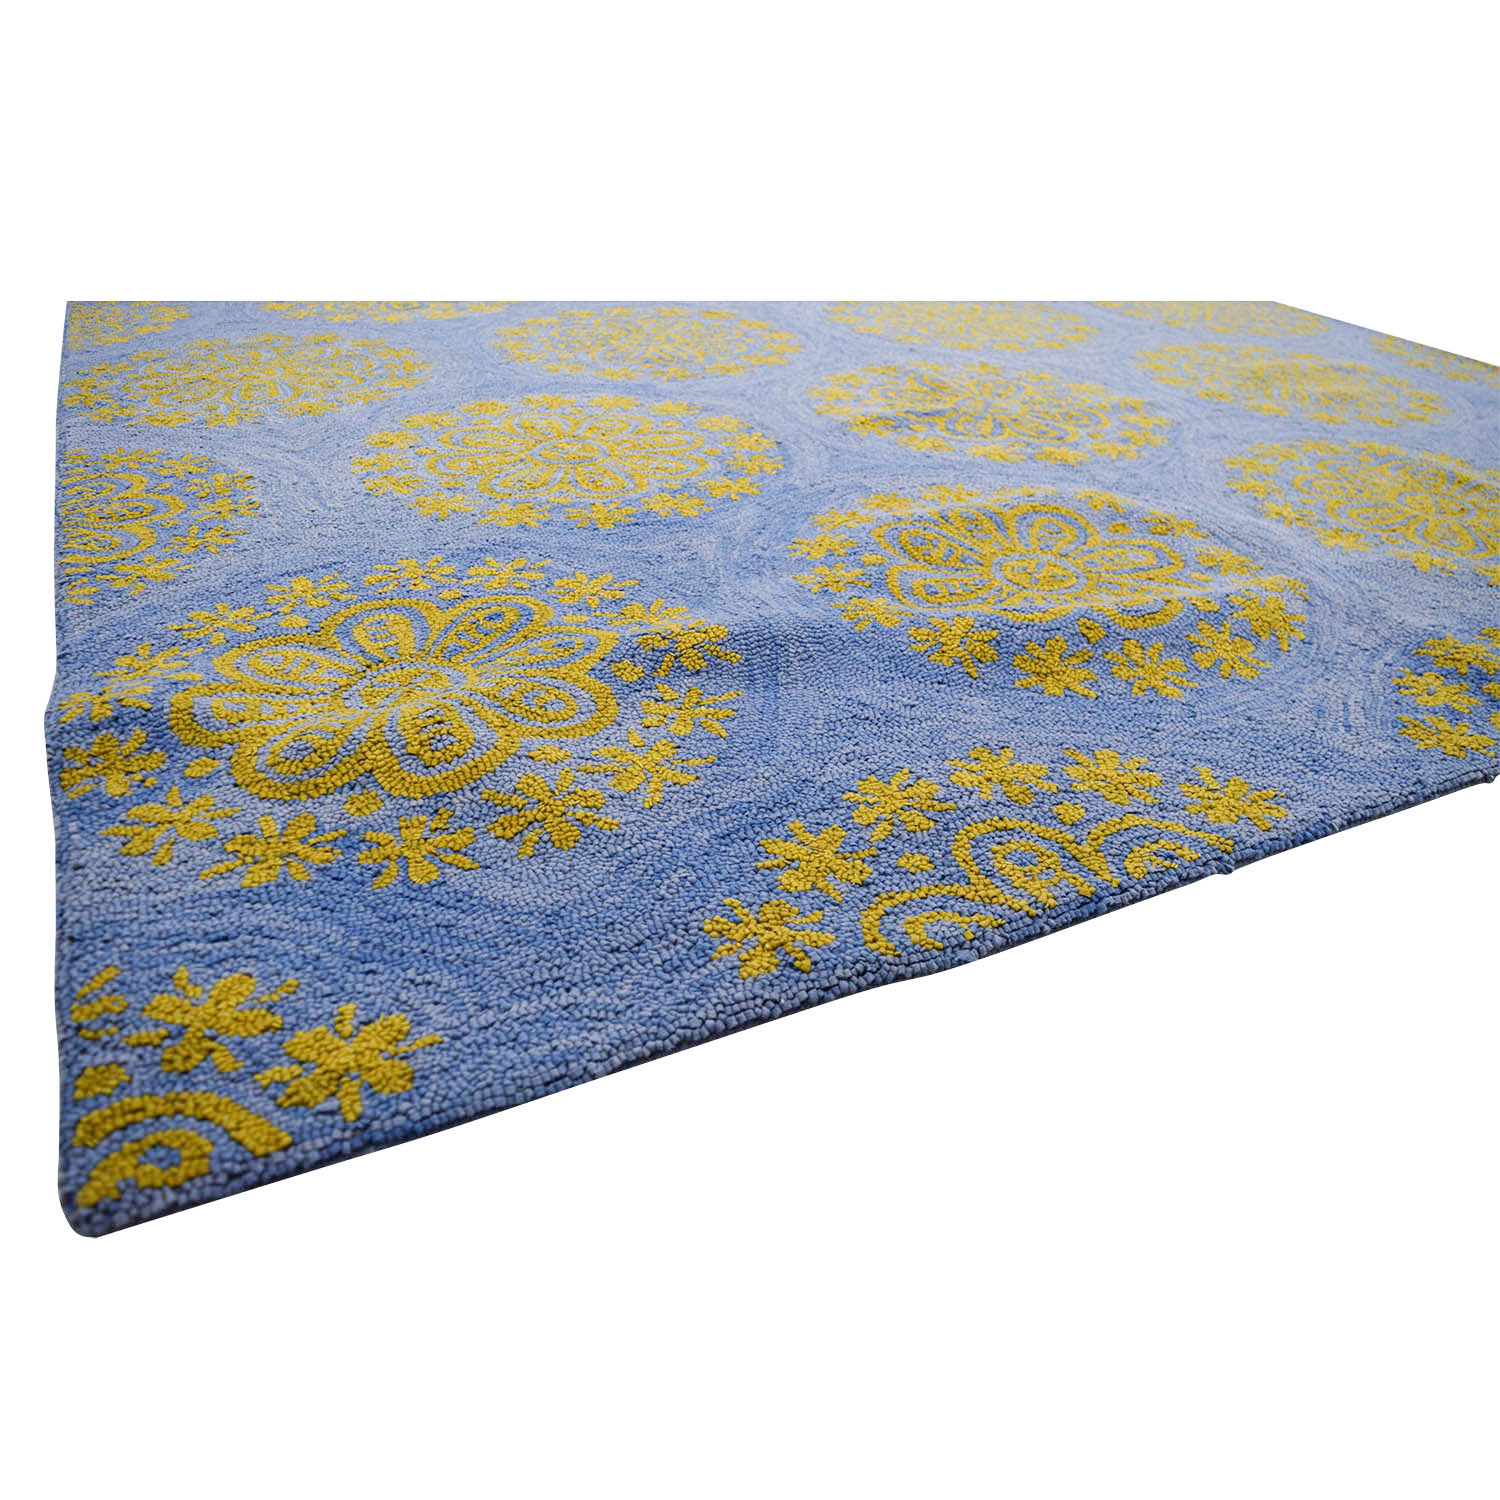 Obeetee Obeetee Hand Hooked Blue and Yellow Medallion Rug discount